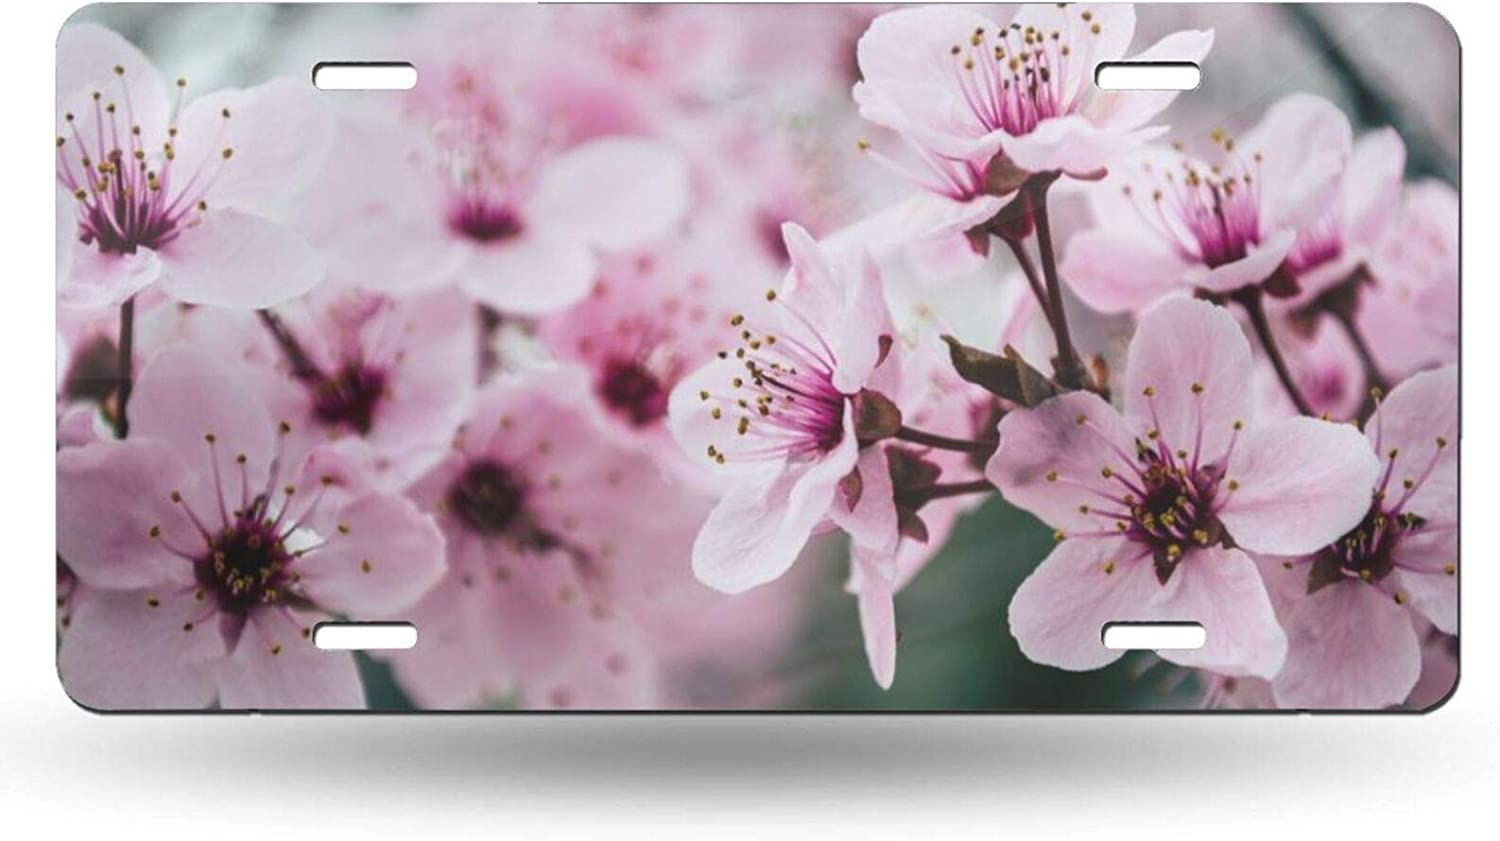 4 Holes ZENPREI Pink Cherry Blossoms License Plate for Decorative Car Front,Vanity Tag,Metal License Plate,Aluminum Novelty License Plate,6 X 12 Inch